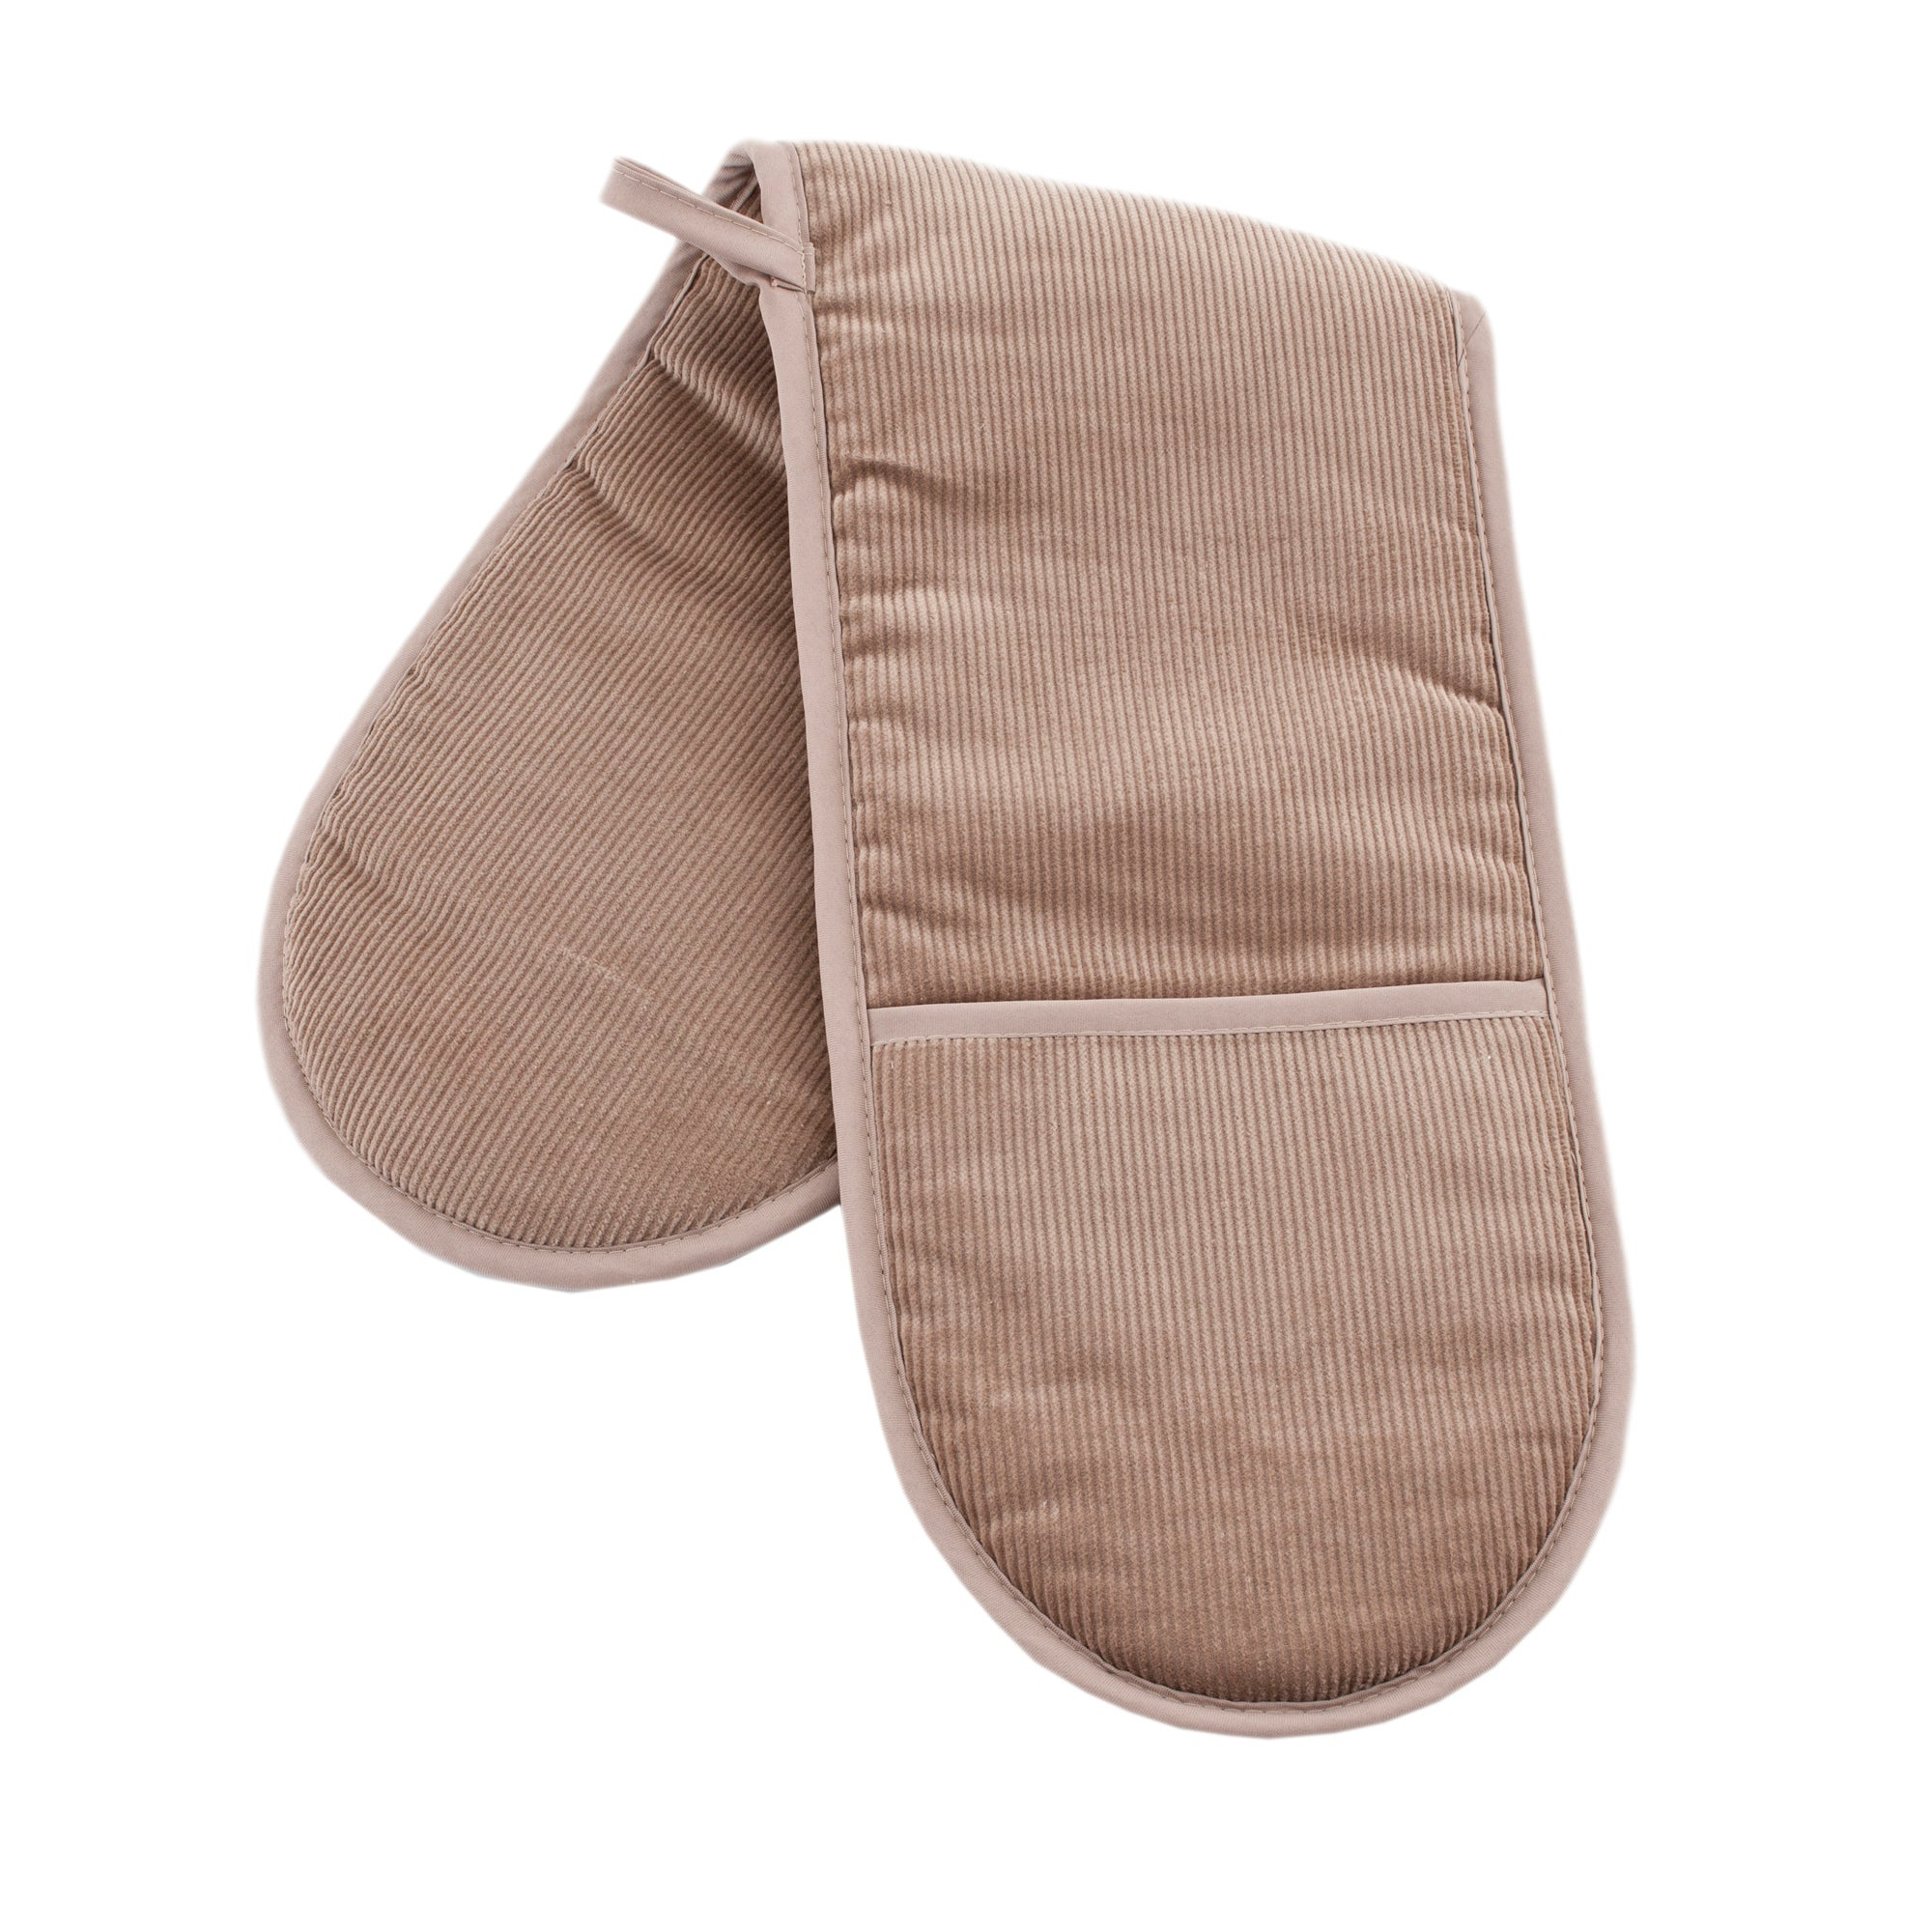 Waters and Noble Latte Cord Collection Double Oven Glove